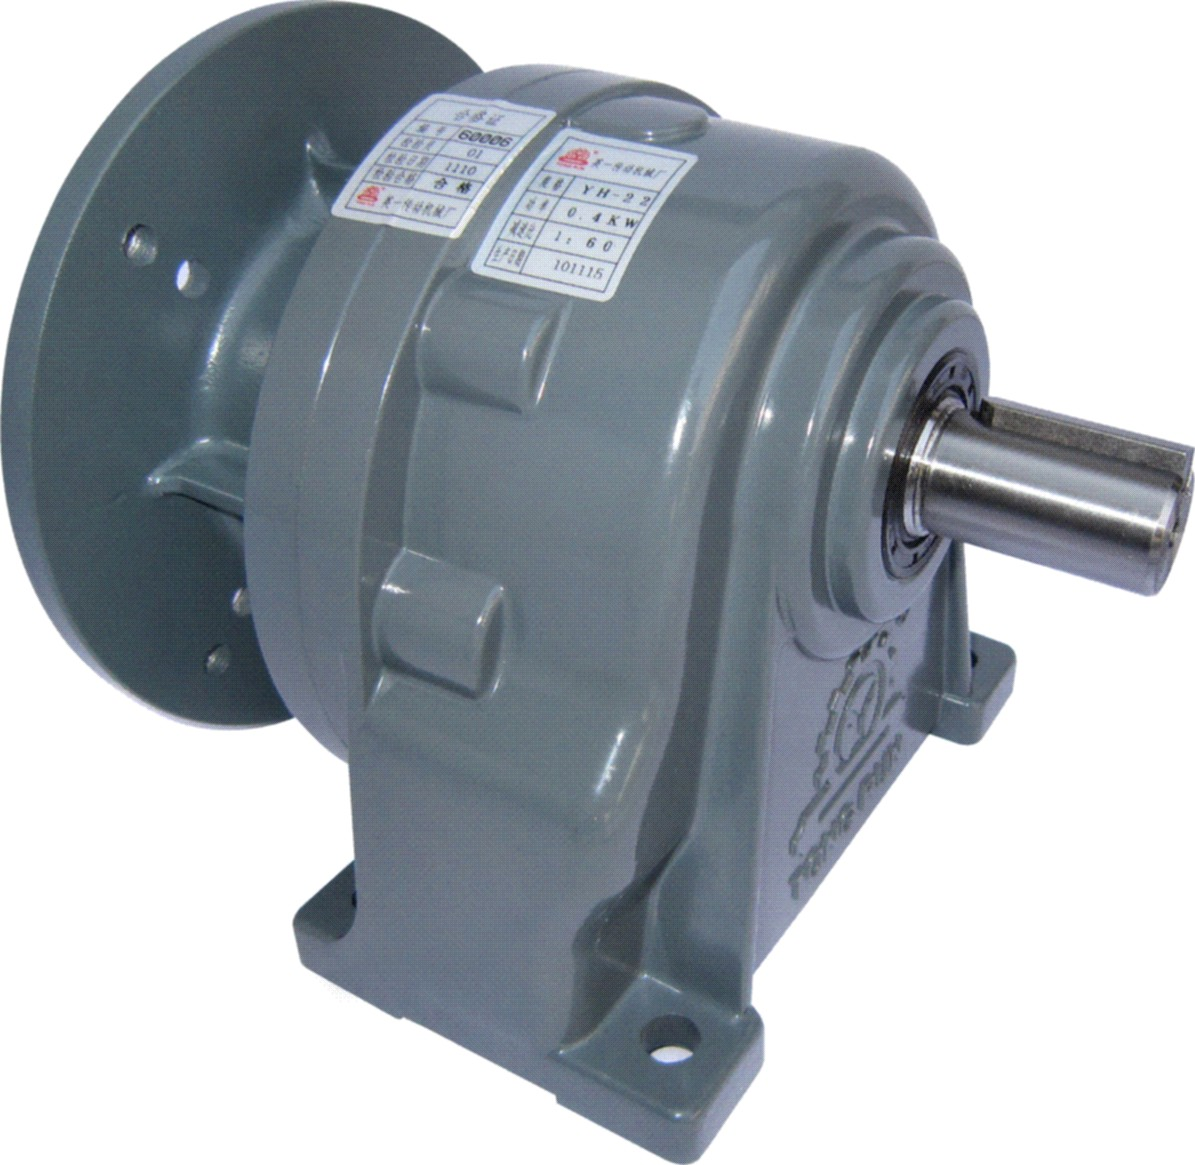 Hard gear helical gear reducer speed reducer motor reducer Gearbox motors